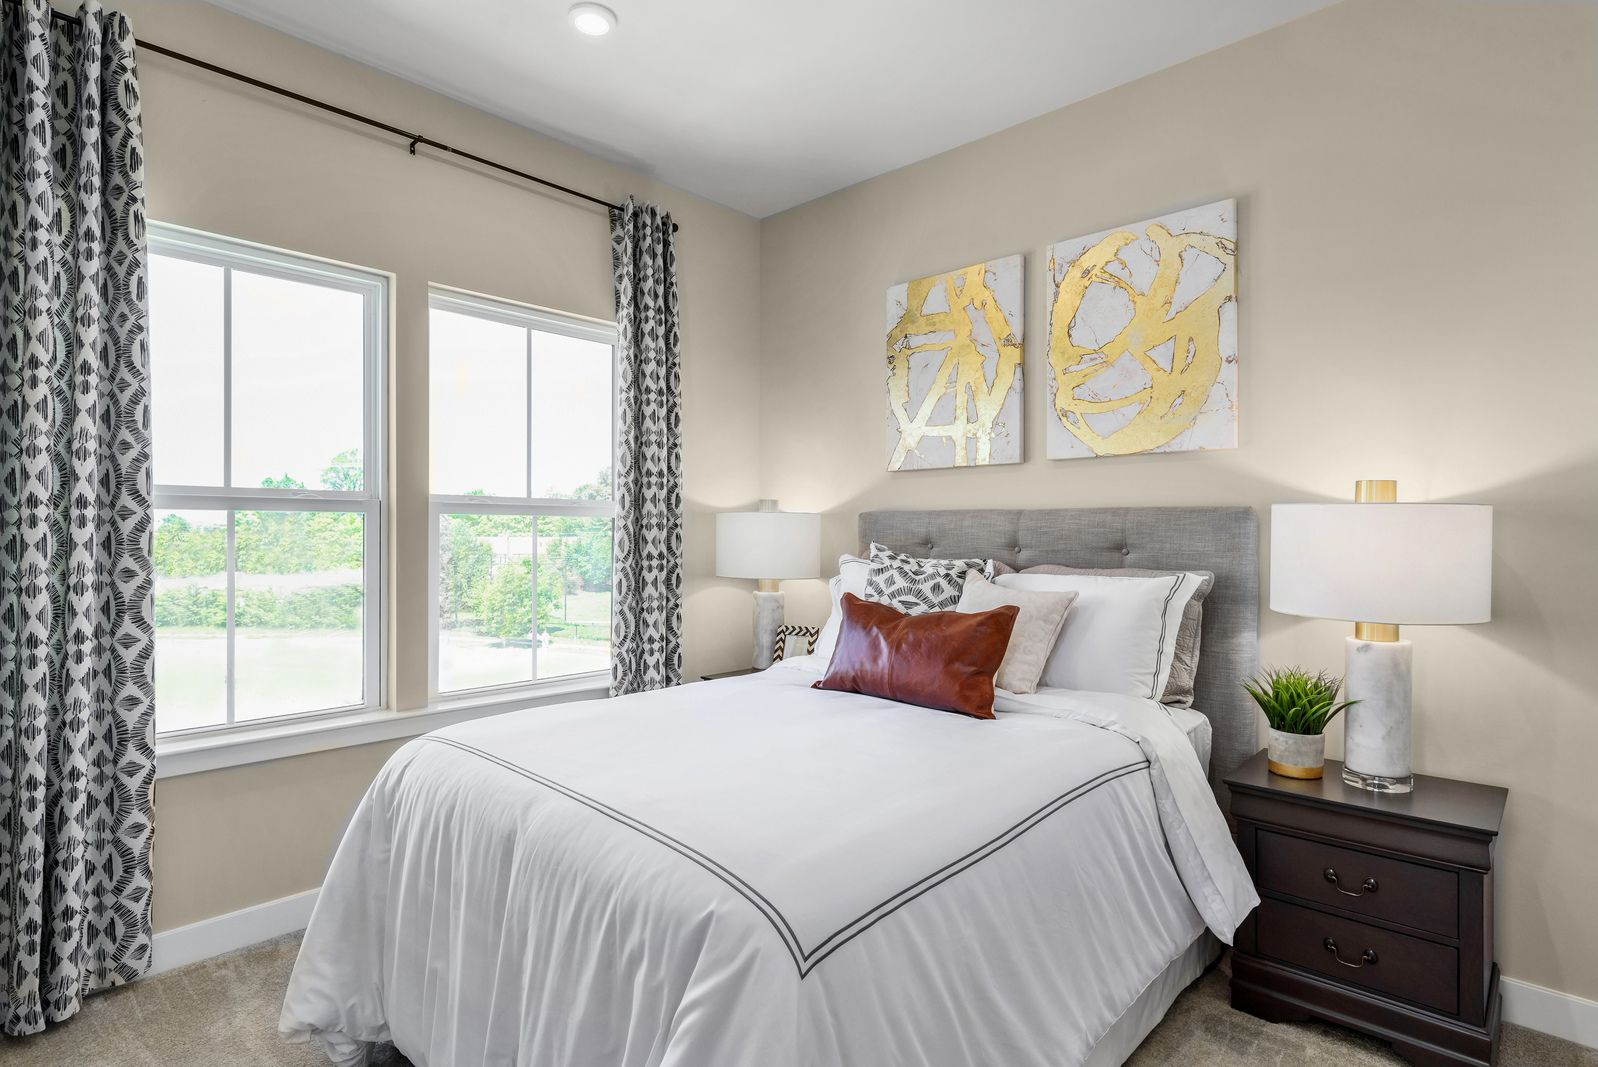 Bedroom featured in the Strauss By Ryan Homes in Baltimore, MD